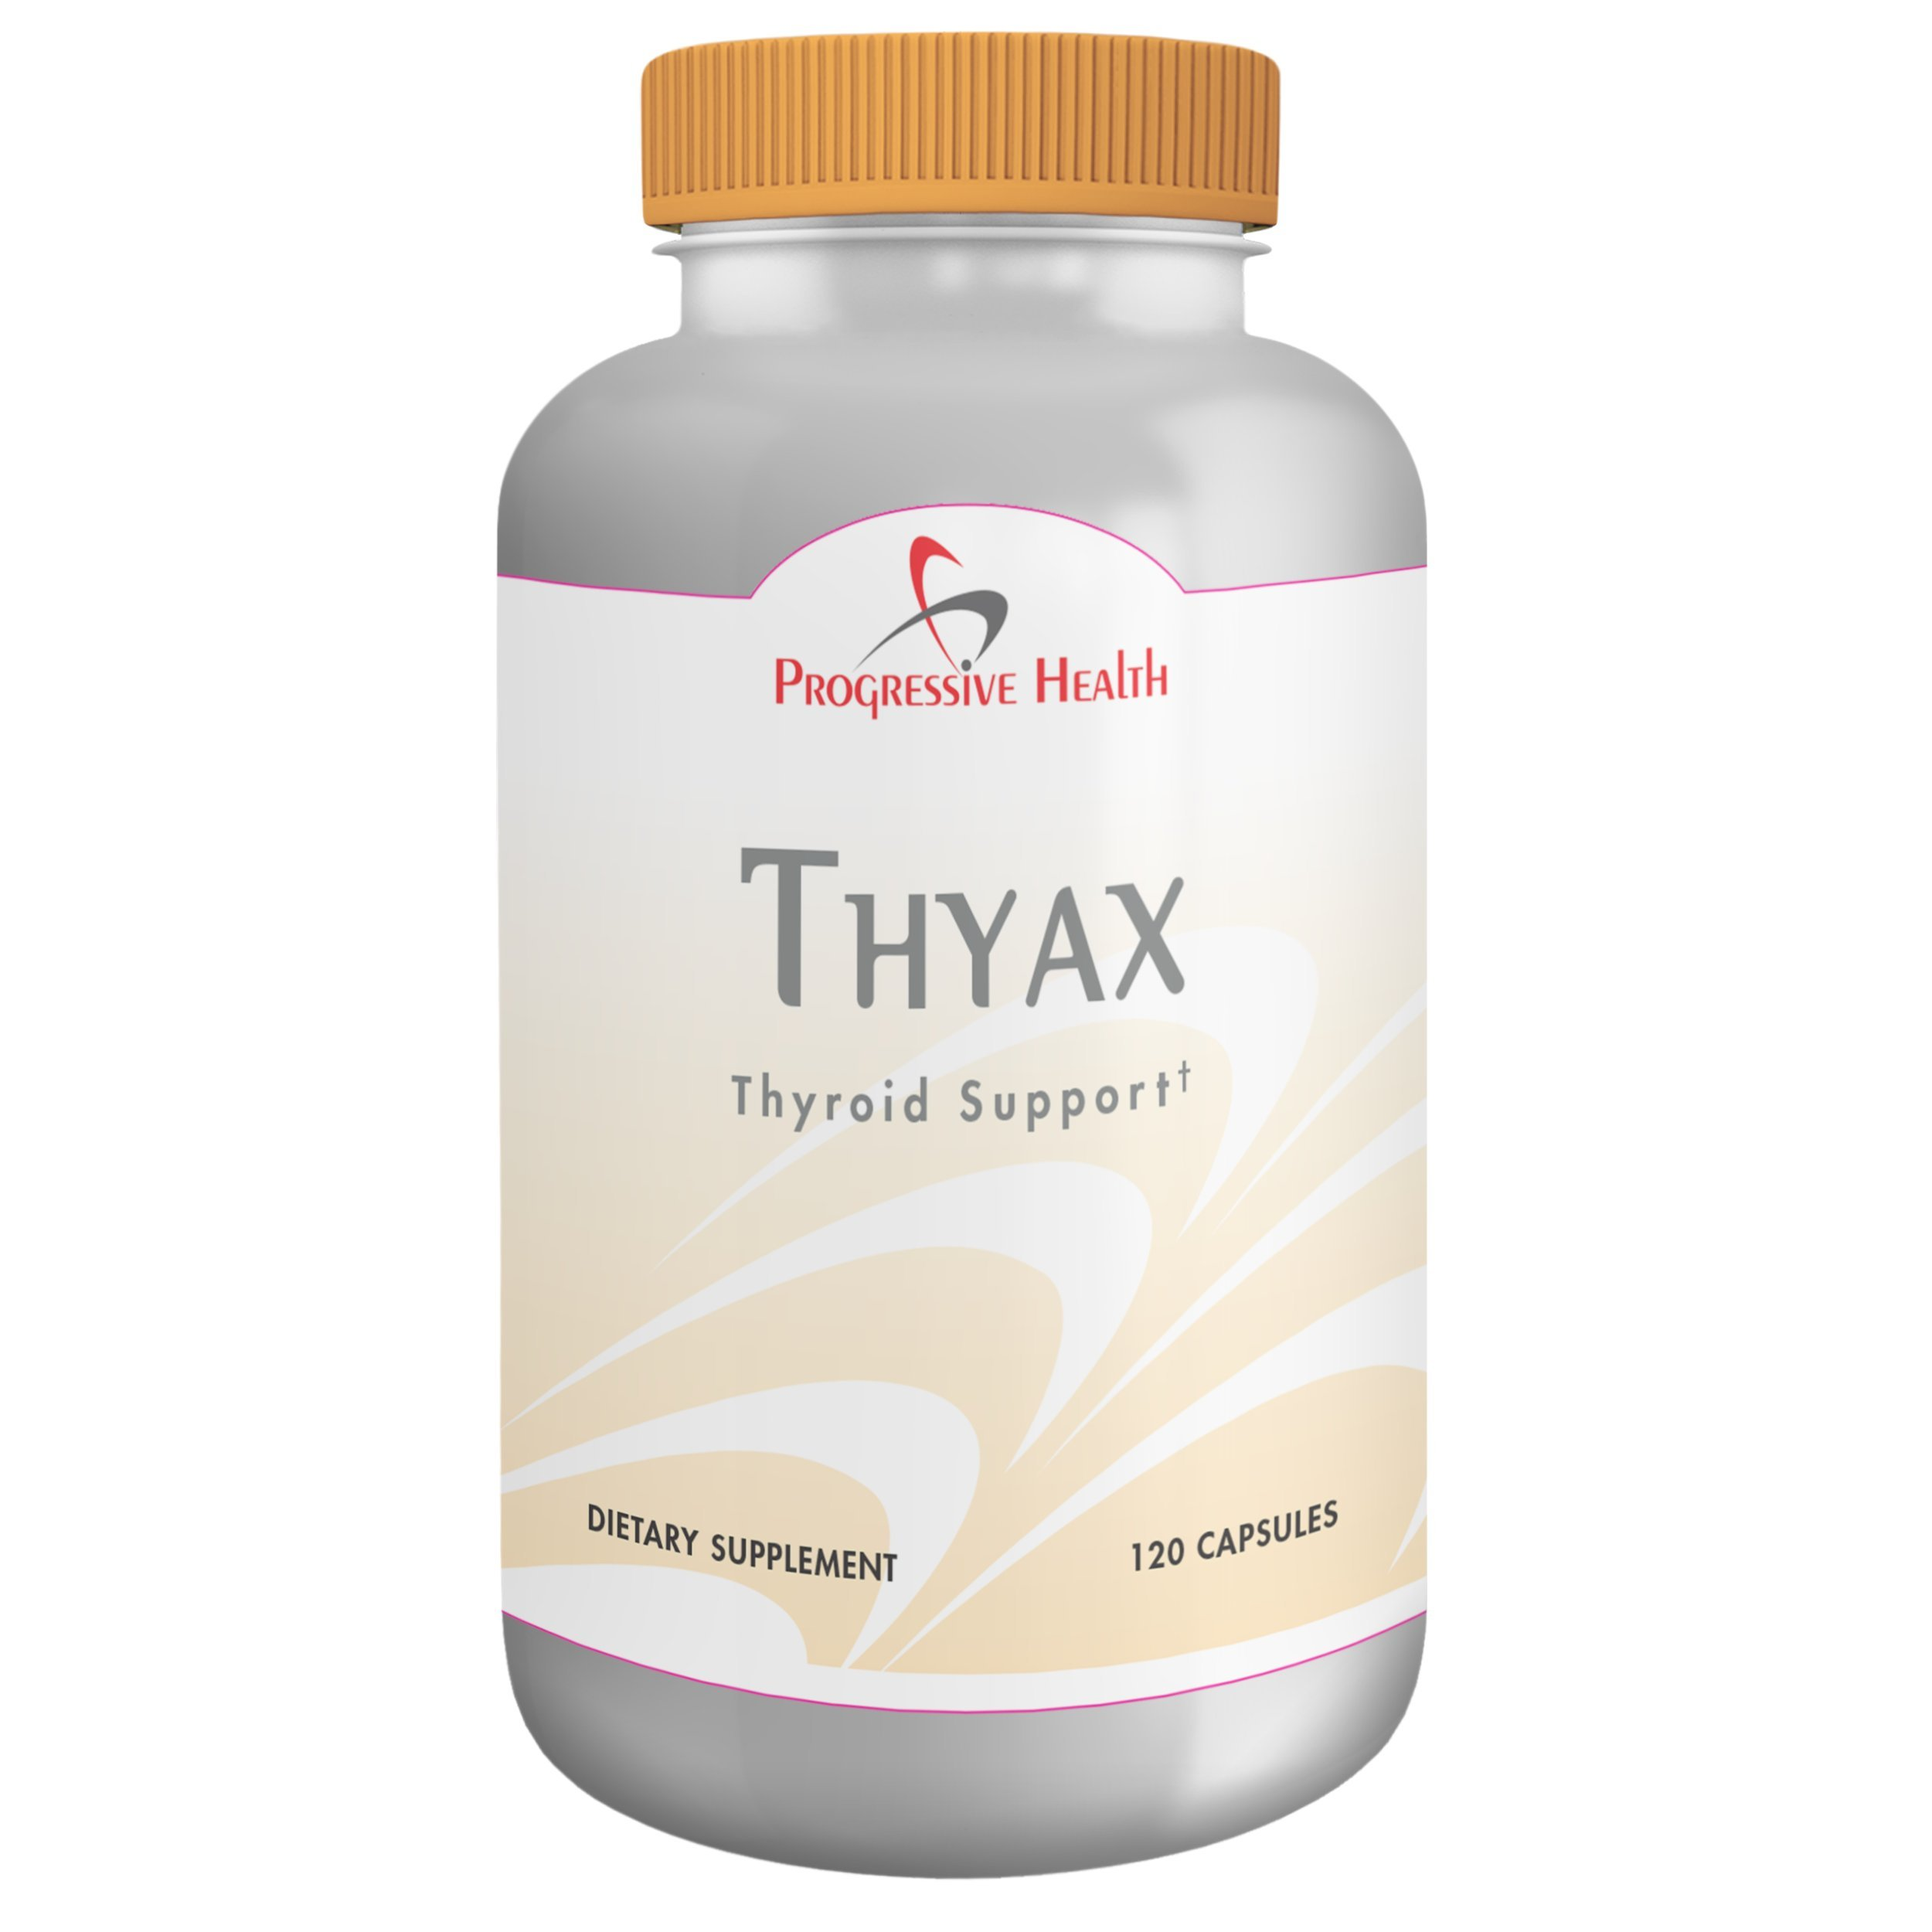 Hypothyroid Support Supplement: If You Have a Low Thyroid, This Vitamin Can Help - One Month Supply by Progressive Health